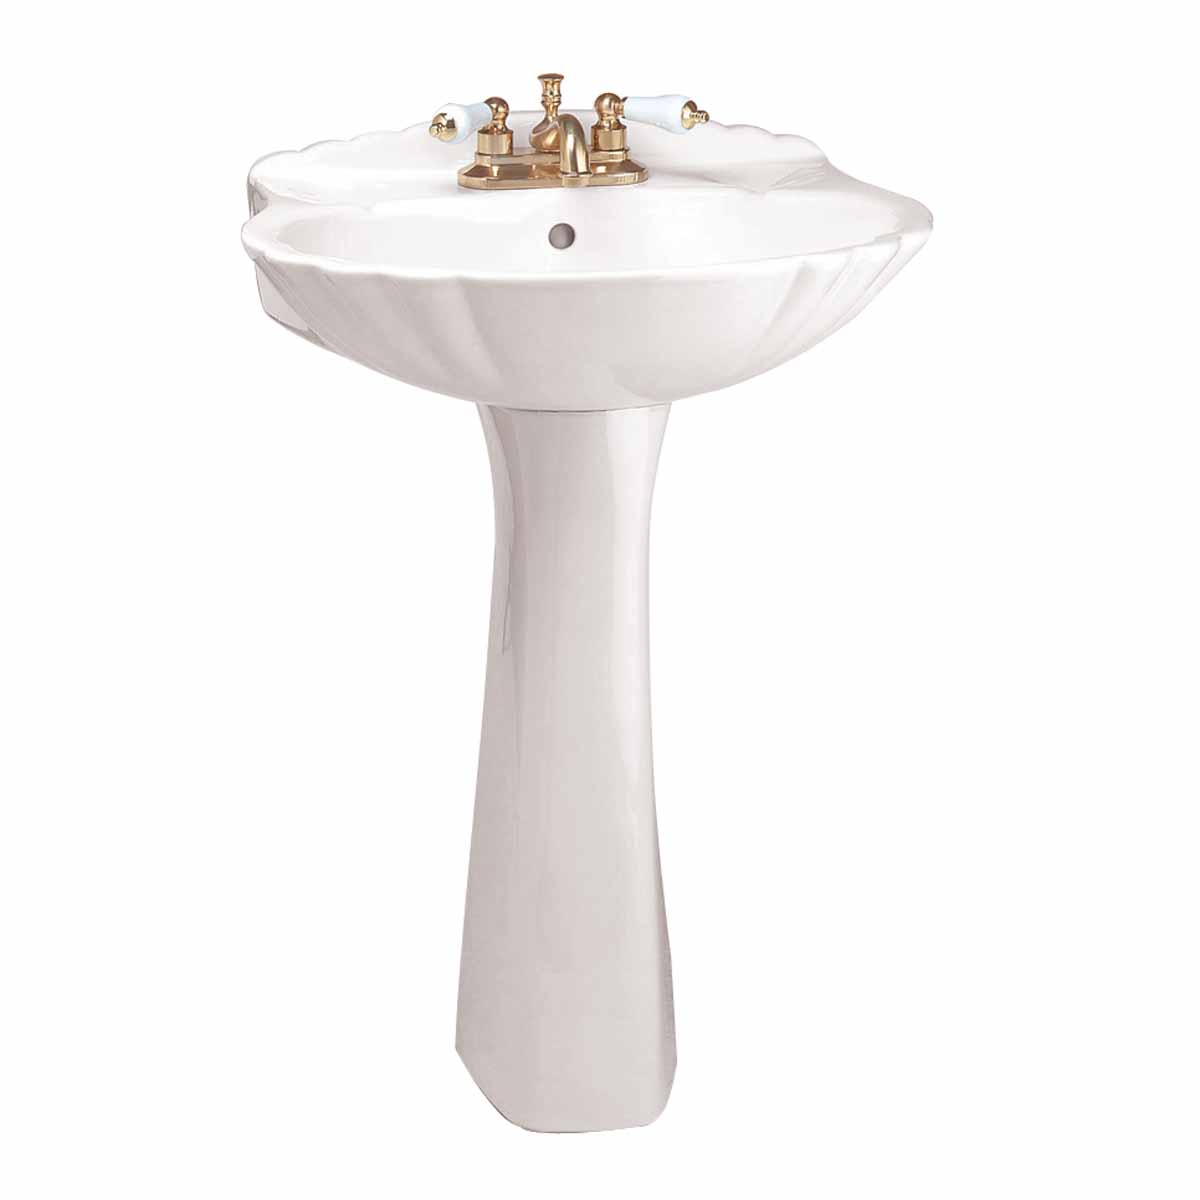 bathroom pedestal sink white china shell 23 w x 33 1 8 h